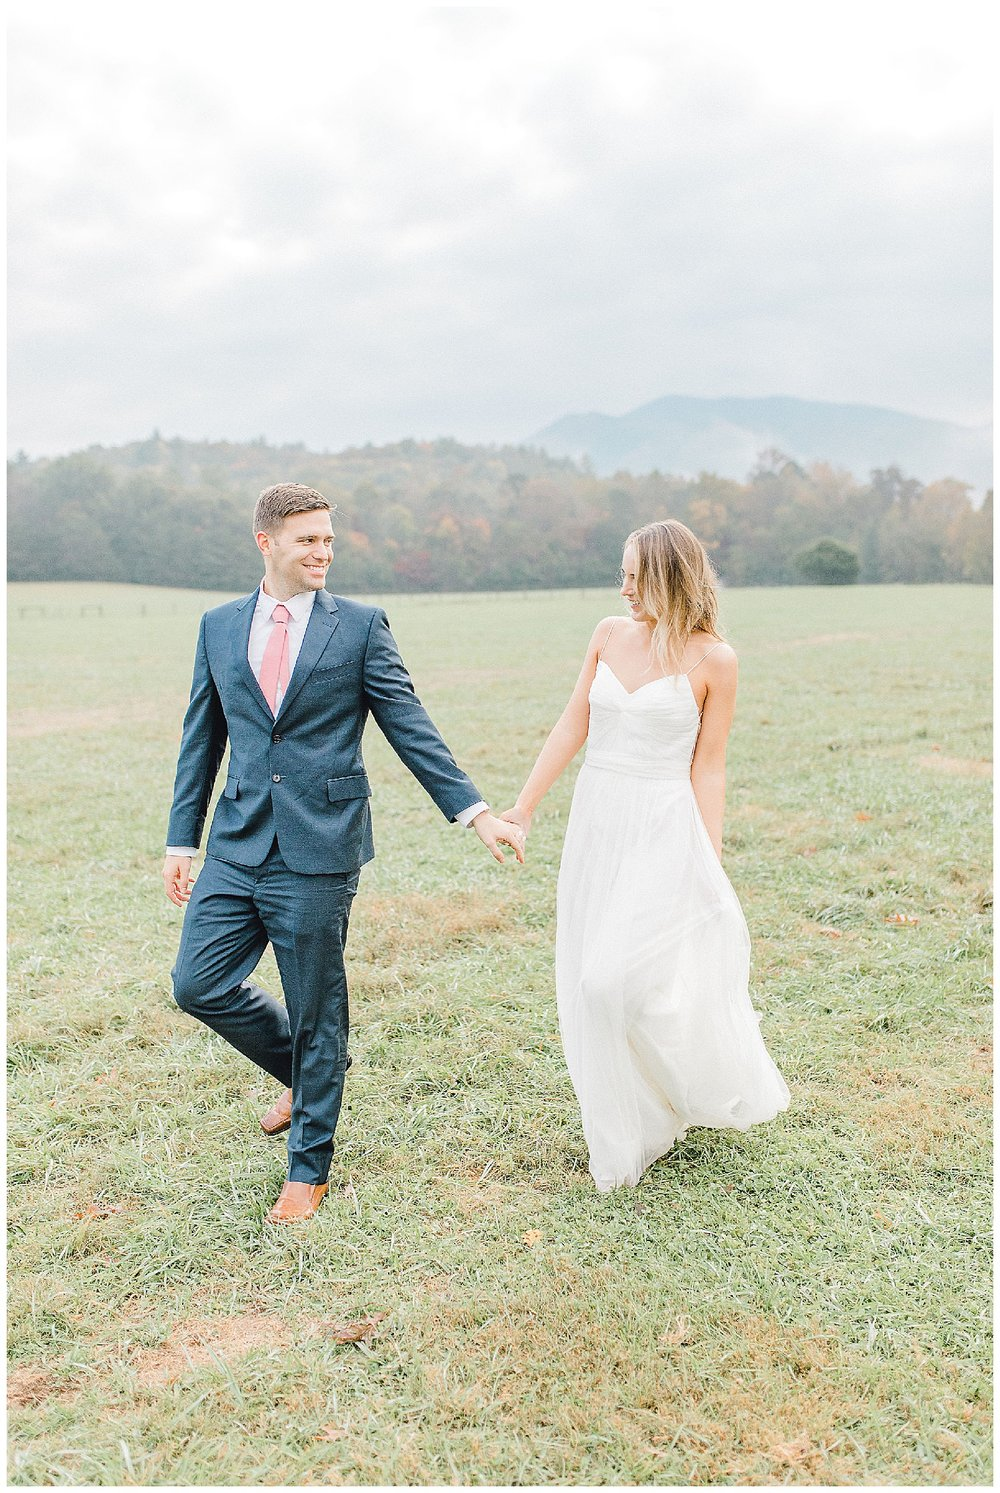 Emma Rose Company recently got to travel all the way to Nashville to photograph the most beautiful post-wedding bride and groom portraits in the Great Smoky Mountains with a gorgeous couple! Nashville wedding inspiration at it's finest._0029.jpg